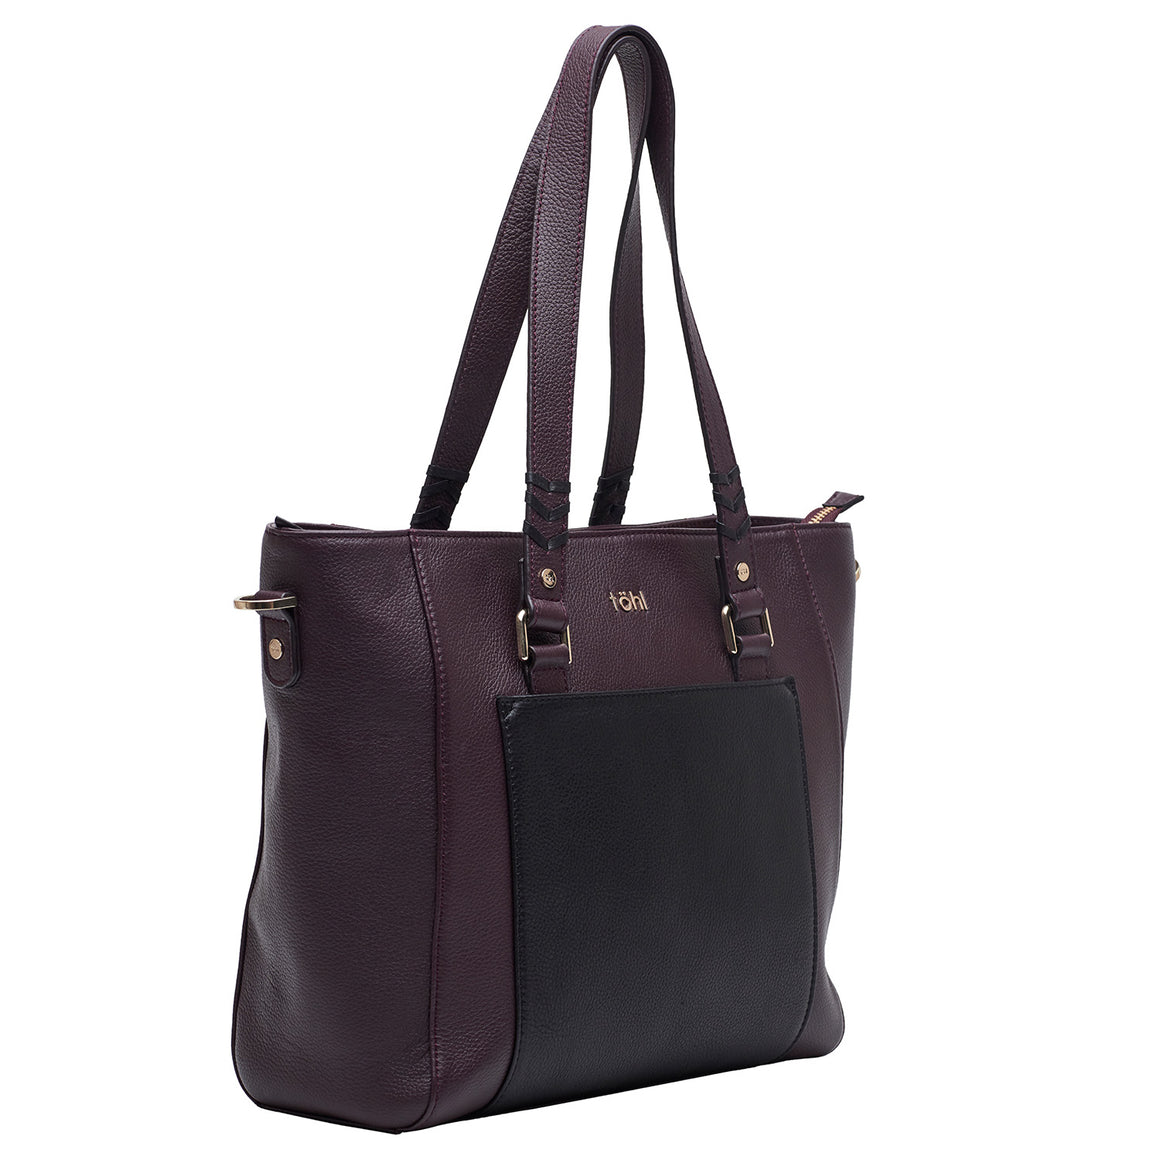 TT 0013 - TOHL MAUREEN WOMEN'S TOTE BAG - PLUM